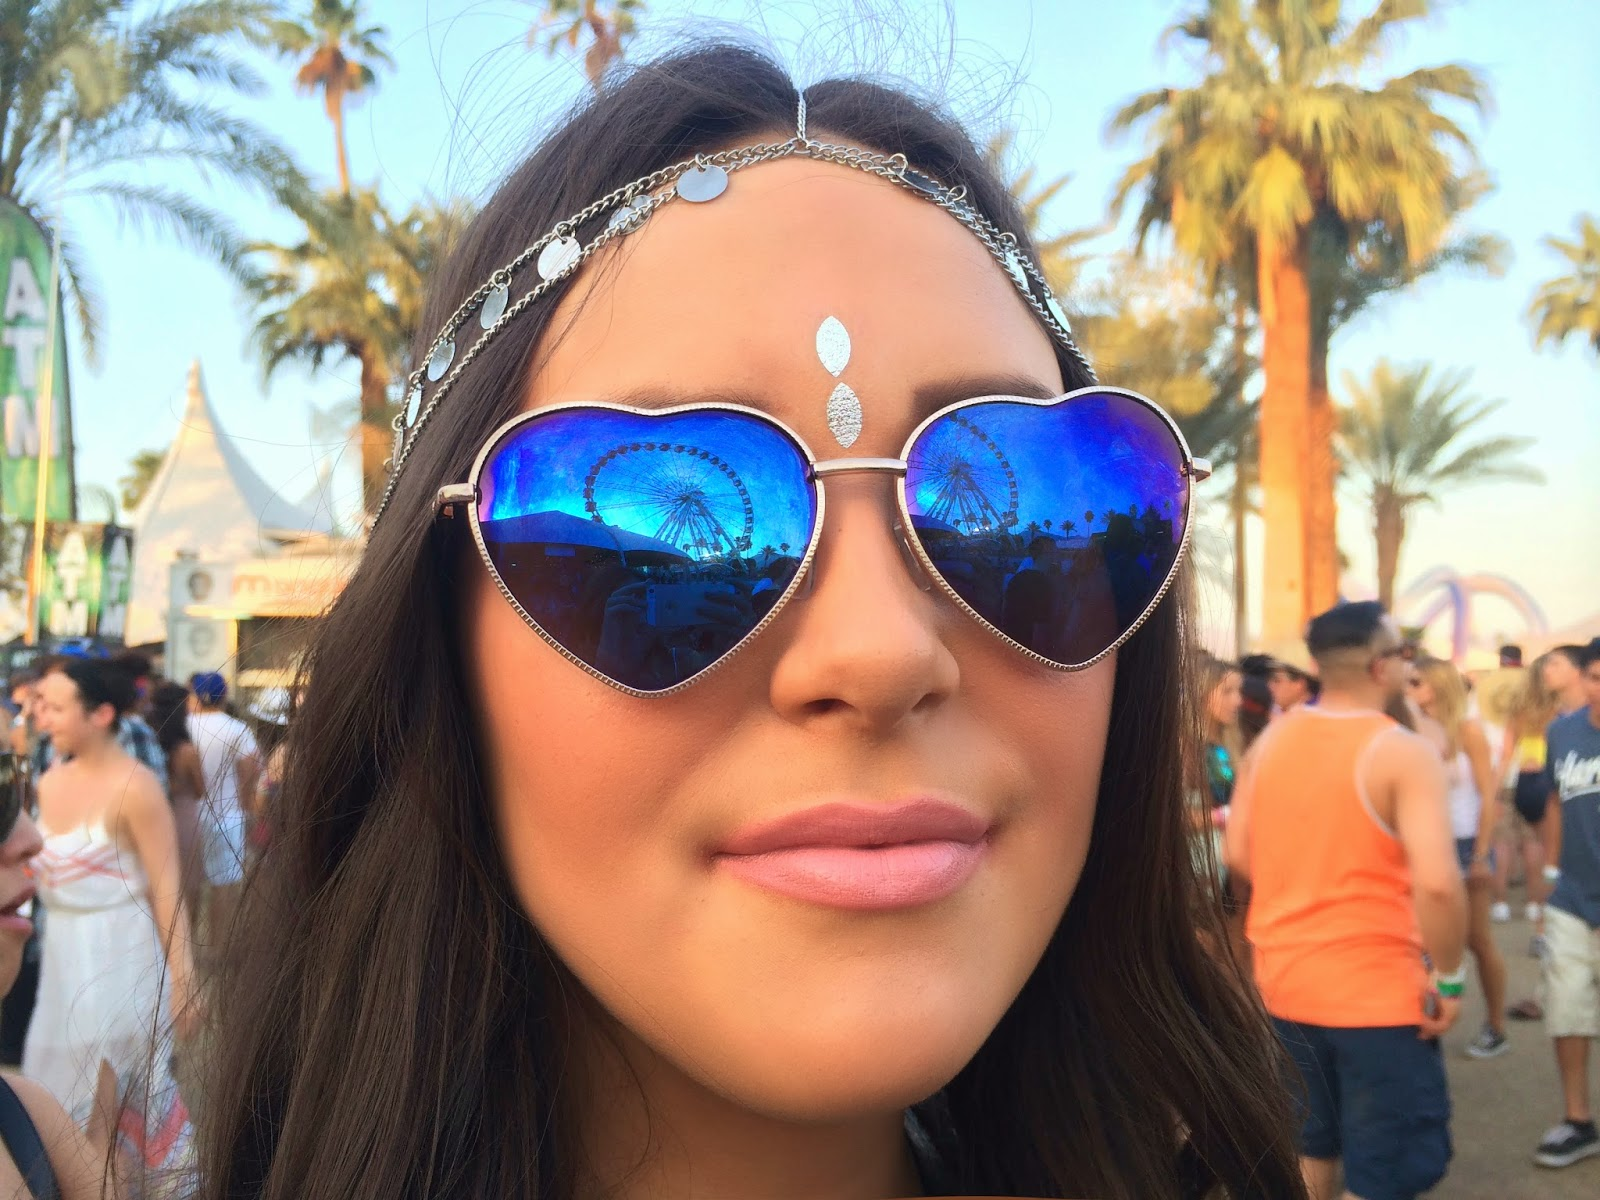 Fashion blogger Mash Elle at Coachella - Peace & Love: Coachella Outfits by popular Orlando fashion blogger Mash Elle